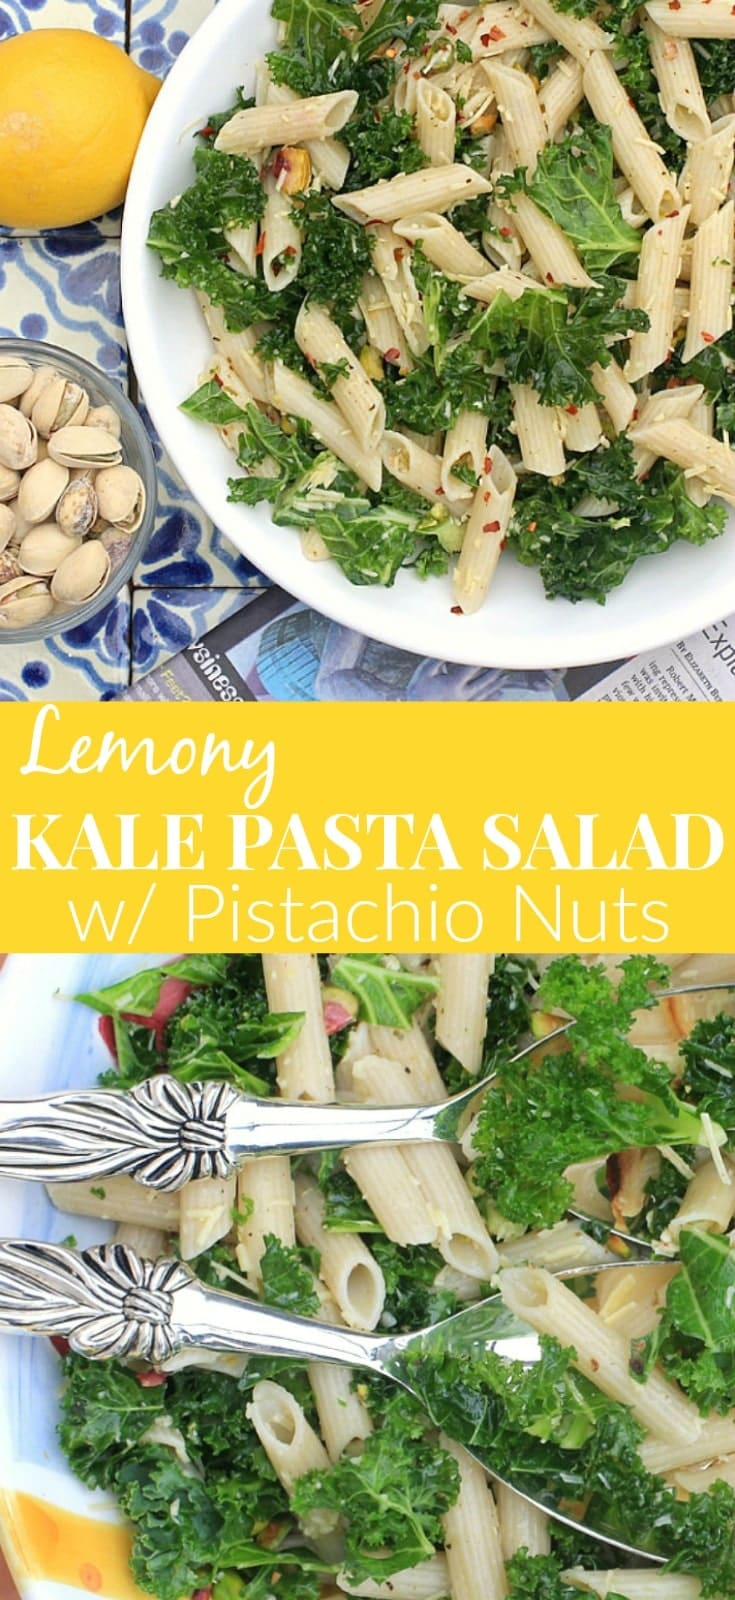 This Lemony Kale Pasta Salad with Pistachio Nuts is super simple to make, and packed with flavor. Make it with your pasta of choice ~ gluten free, grain free, or legume based for a nutritious boost of protein and fiber. So delicious! #glutenfree #vegetarian #meatlessmonday #pastasalad #kale